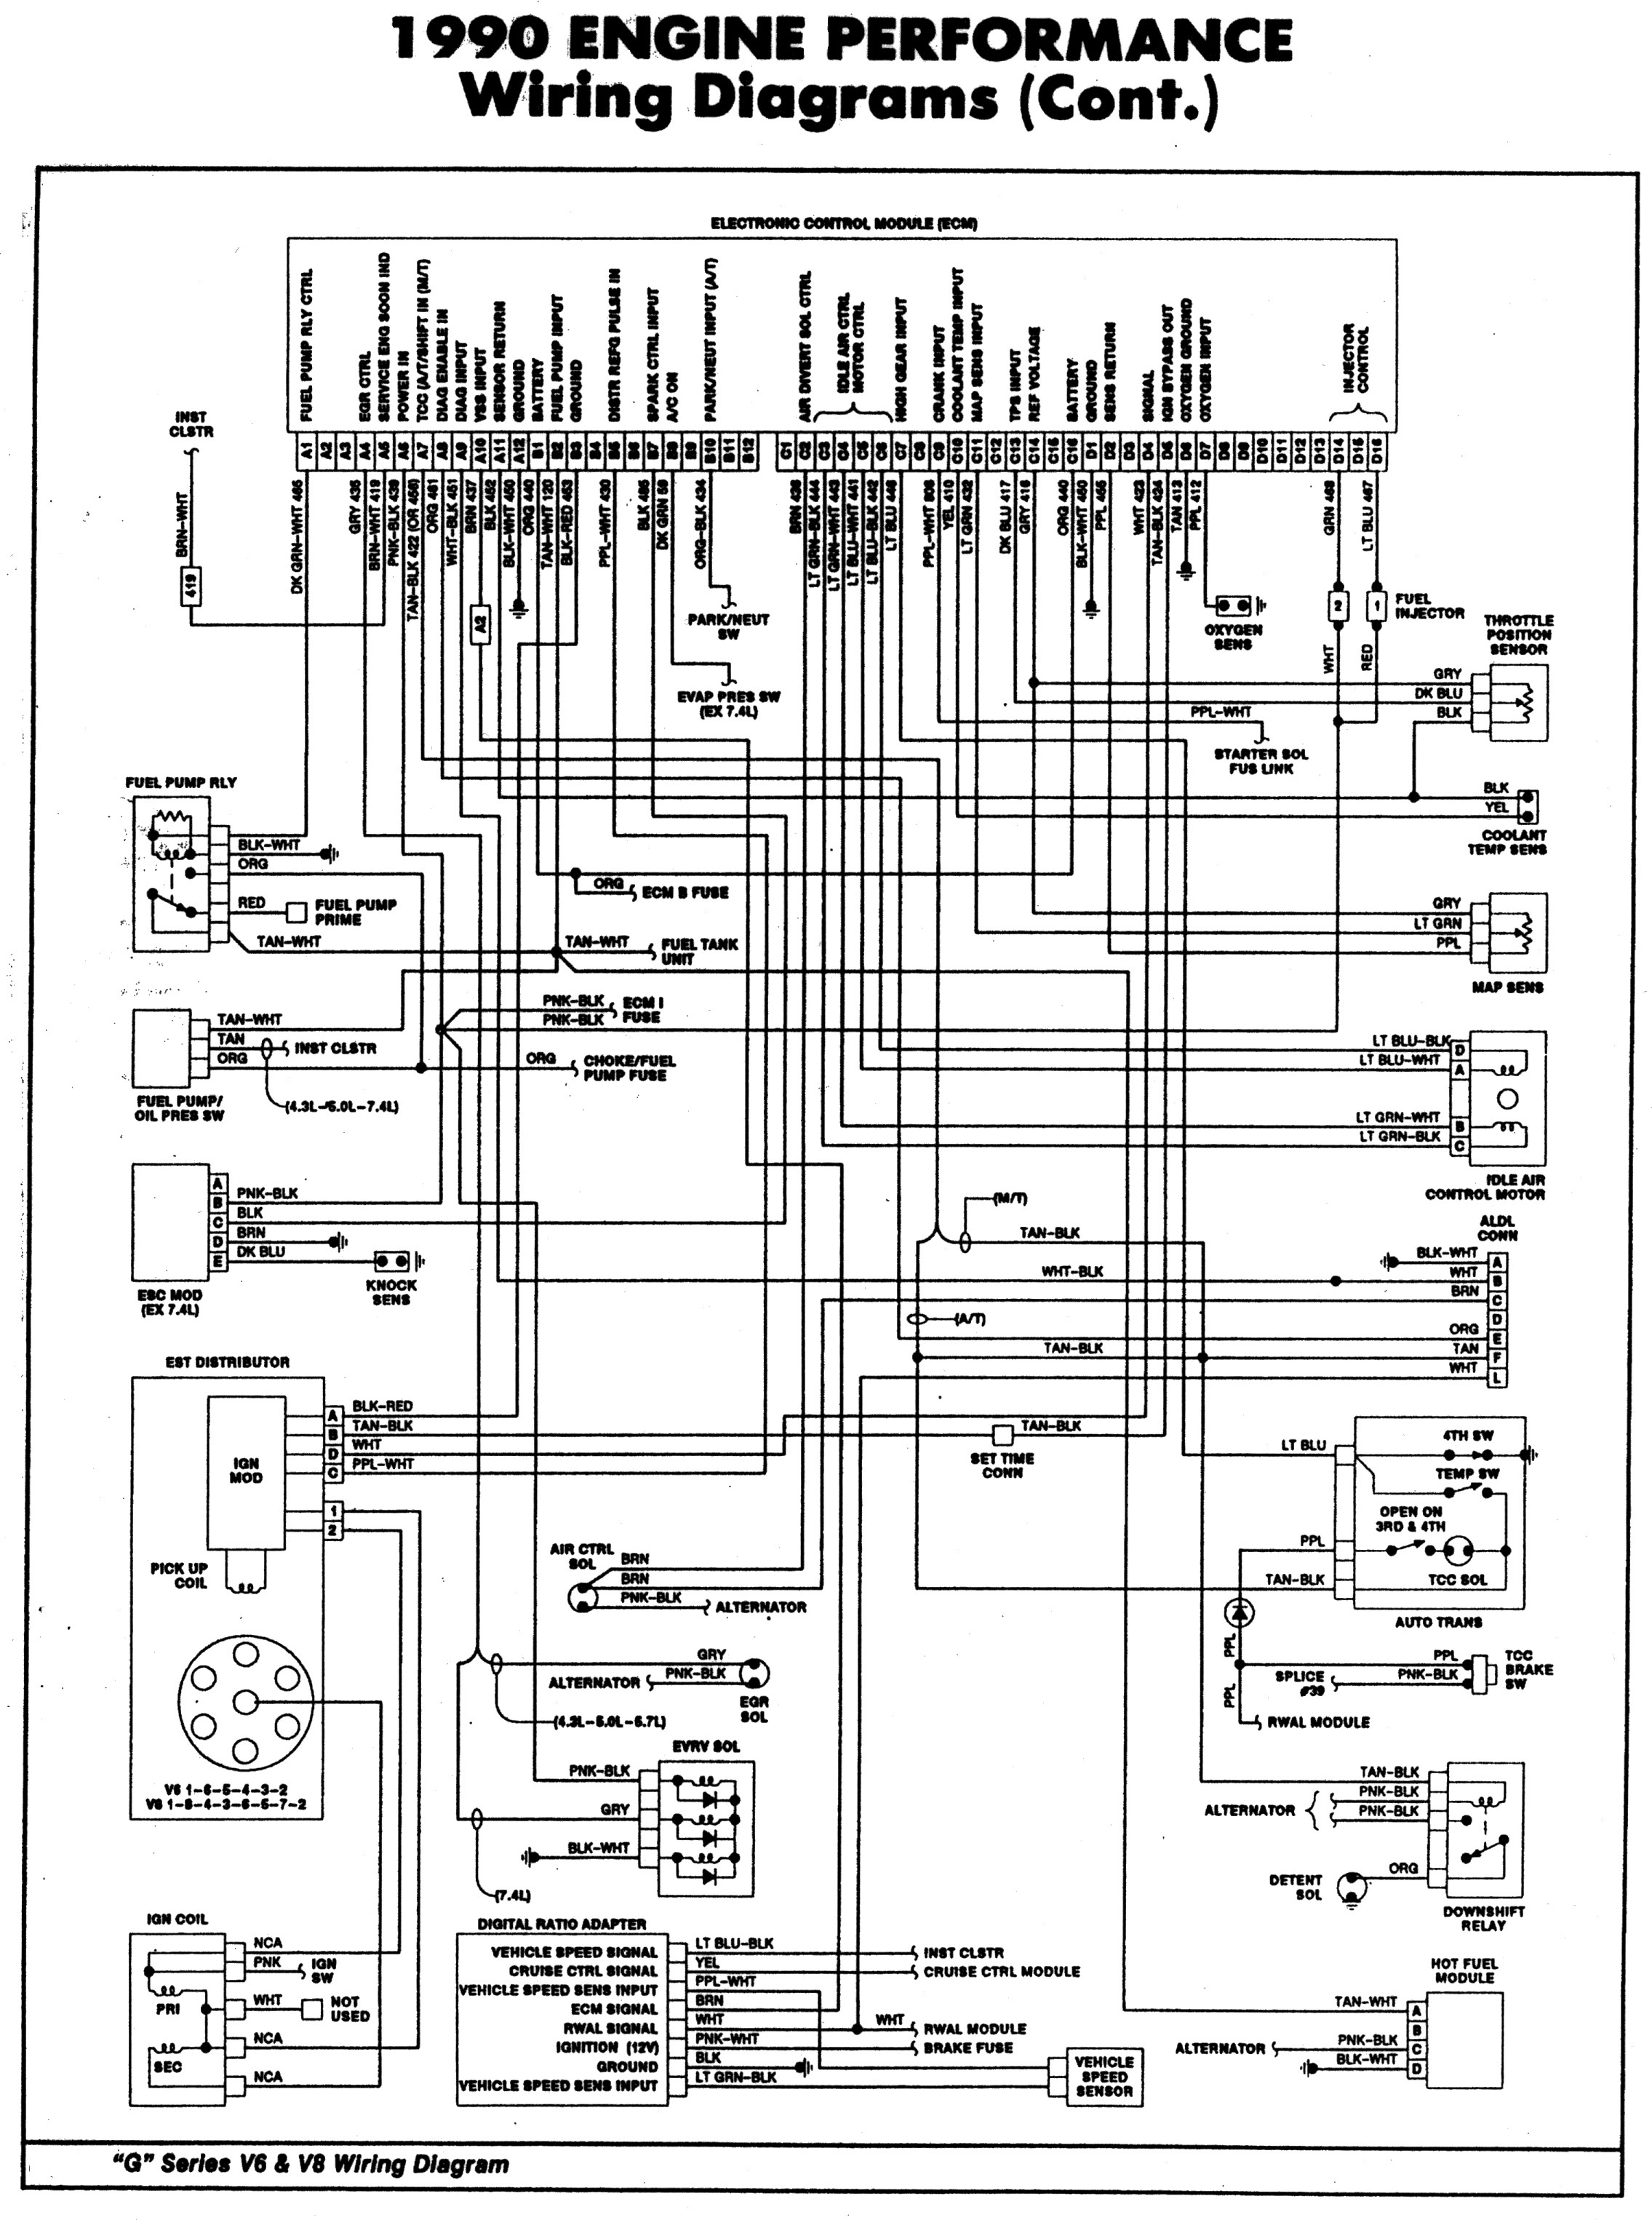 2005 suburban wiring diagram 1990 suburban wiring diagram fan